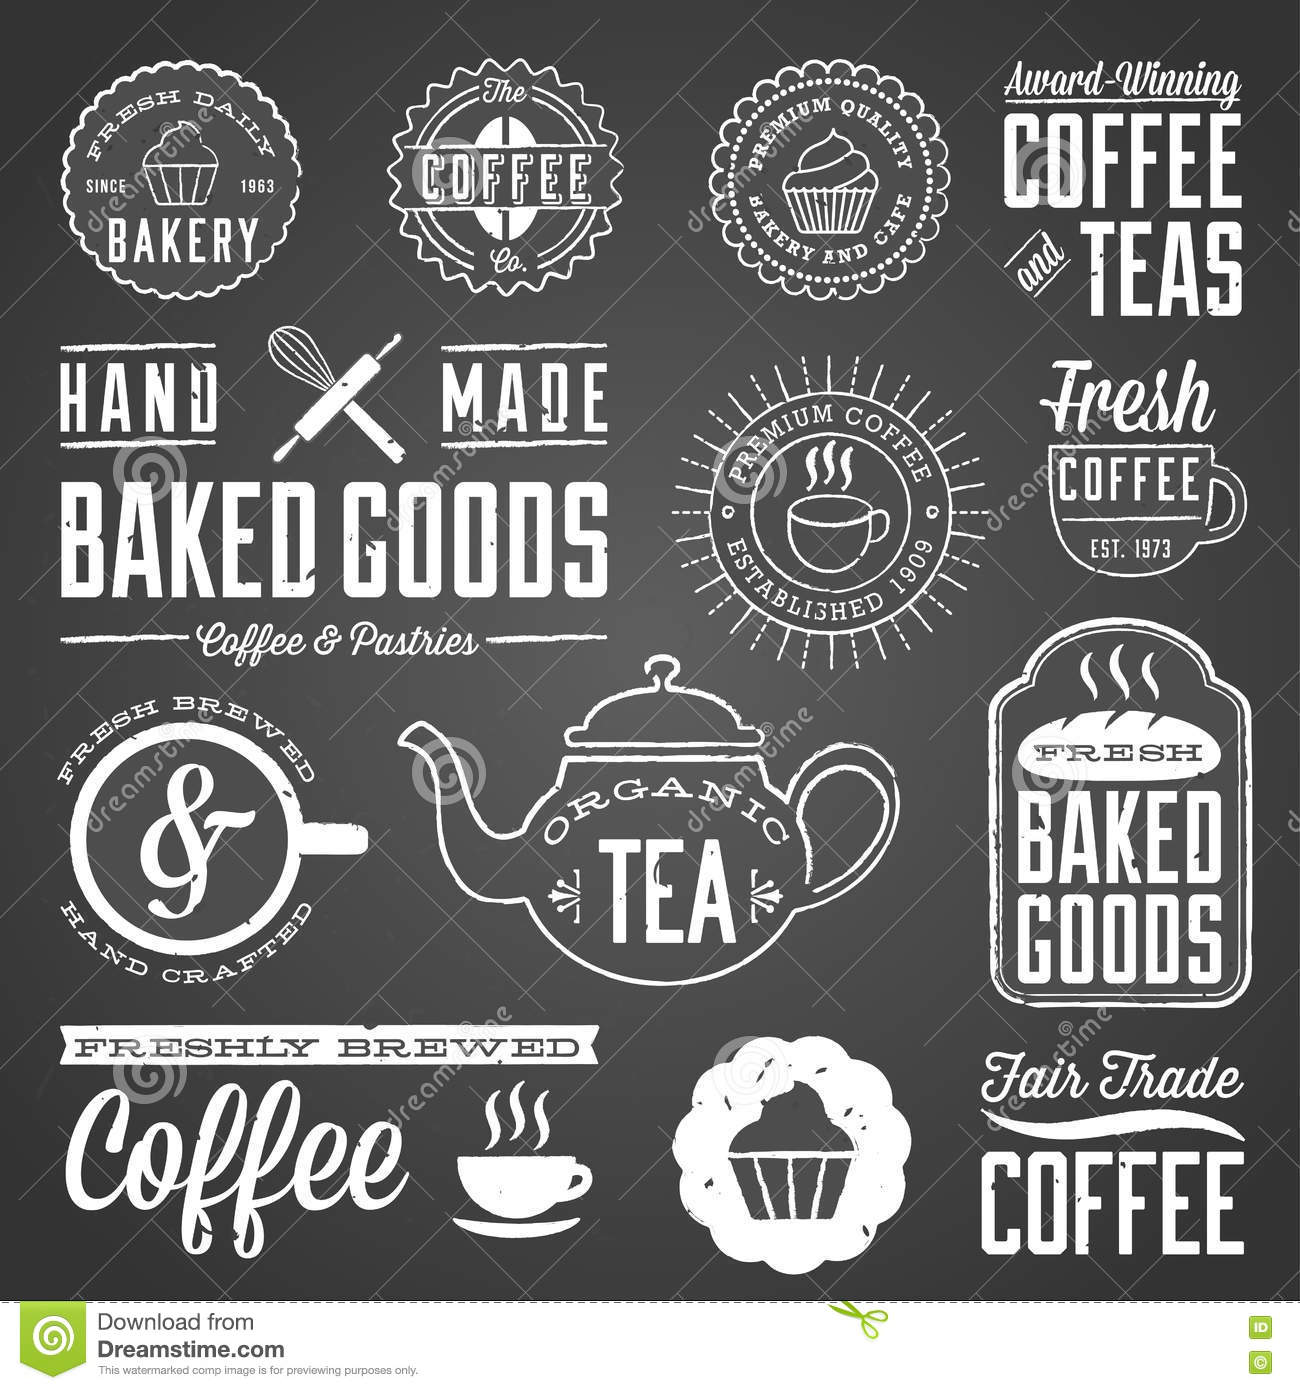 Chalkboard Designs Chalkboard Cafe And Bakery Designs Stock Vector Image 72574691